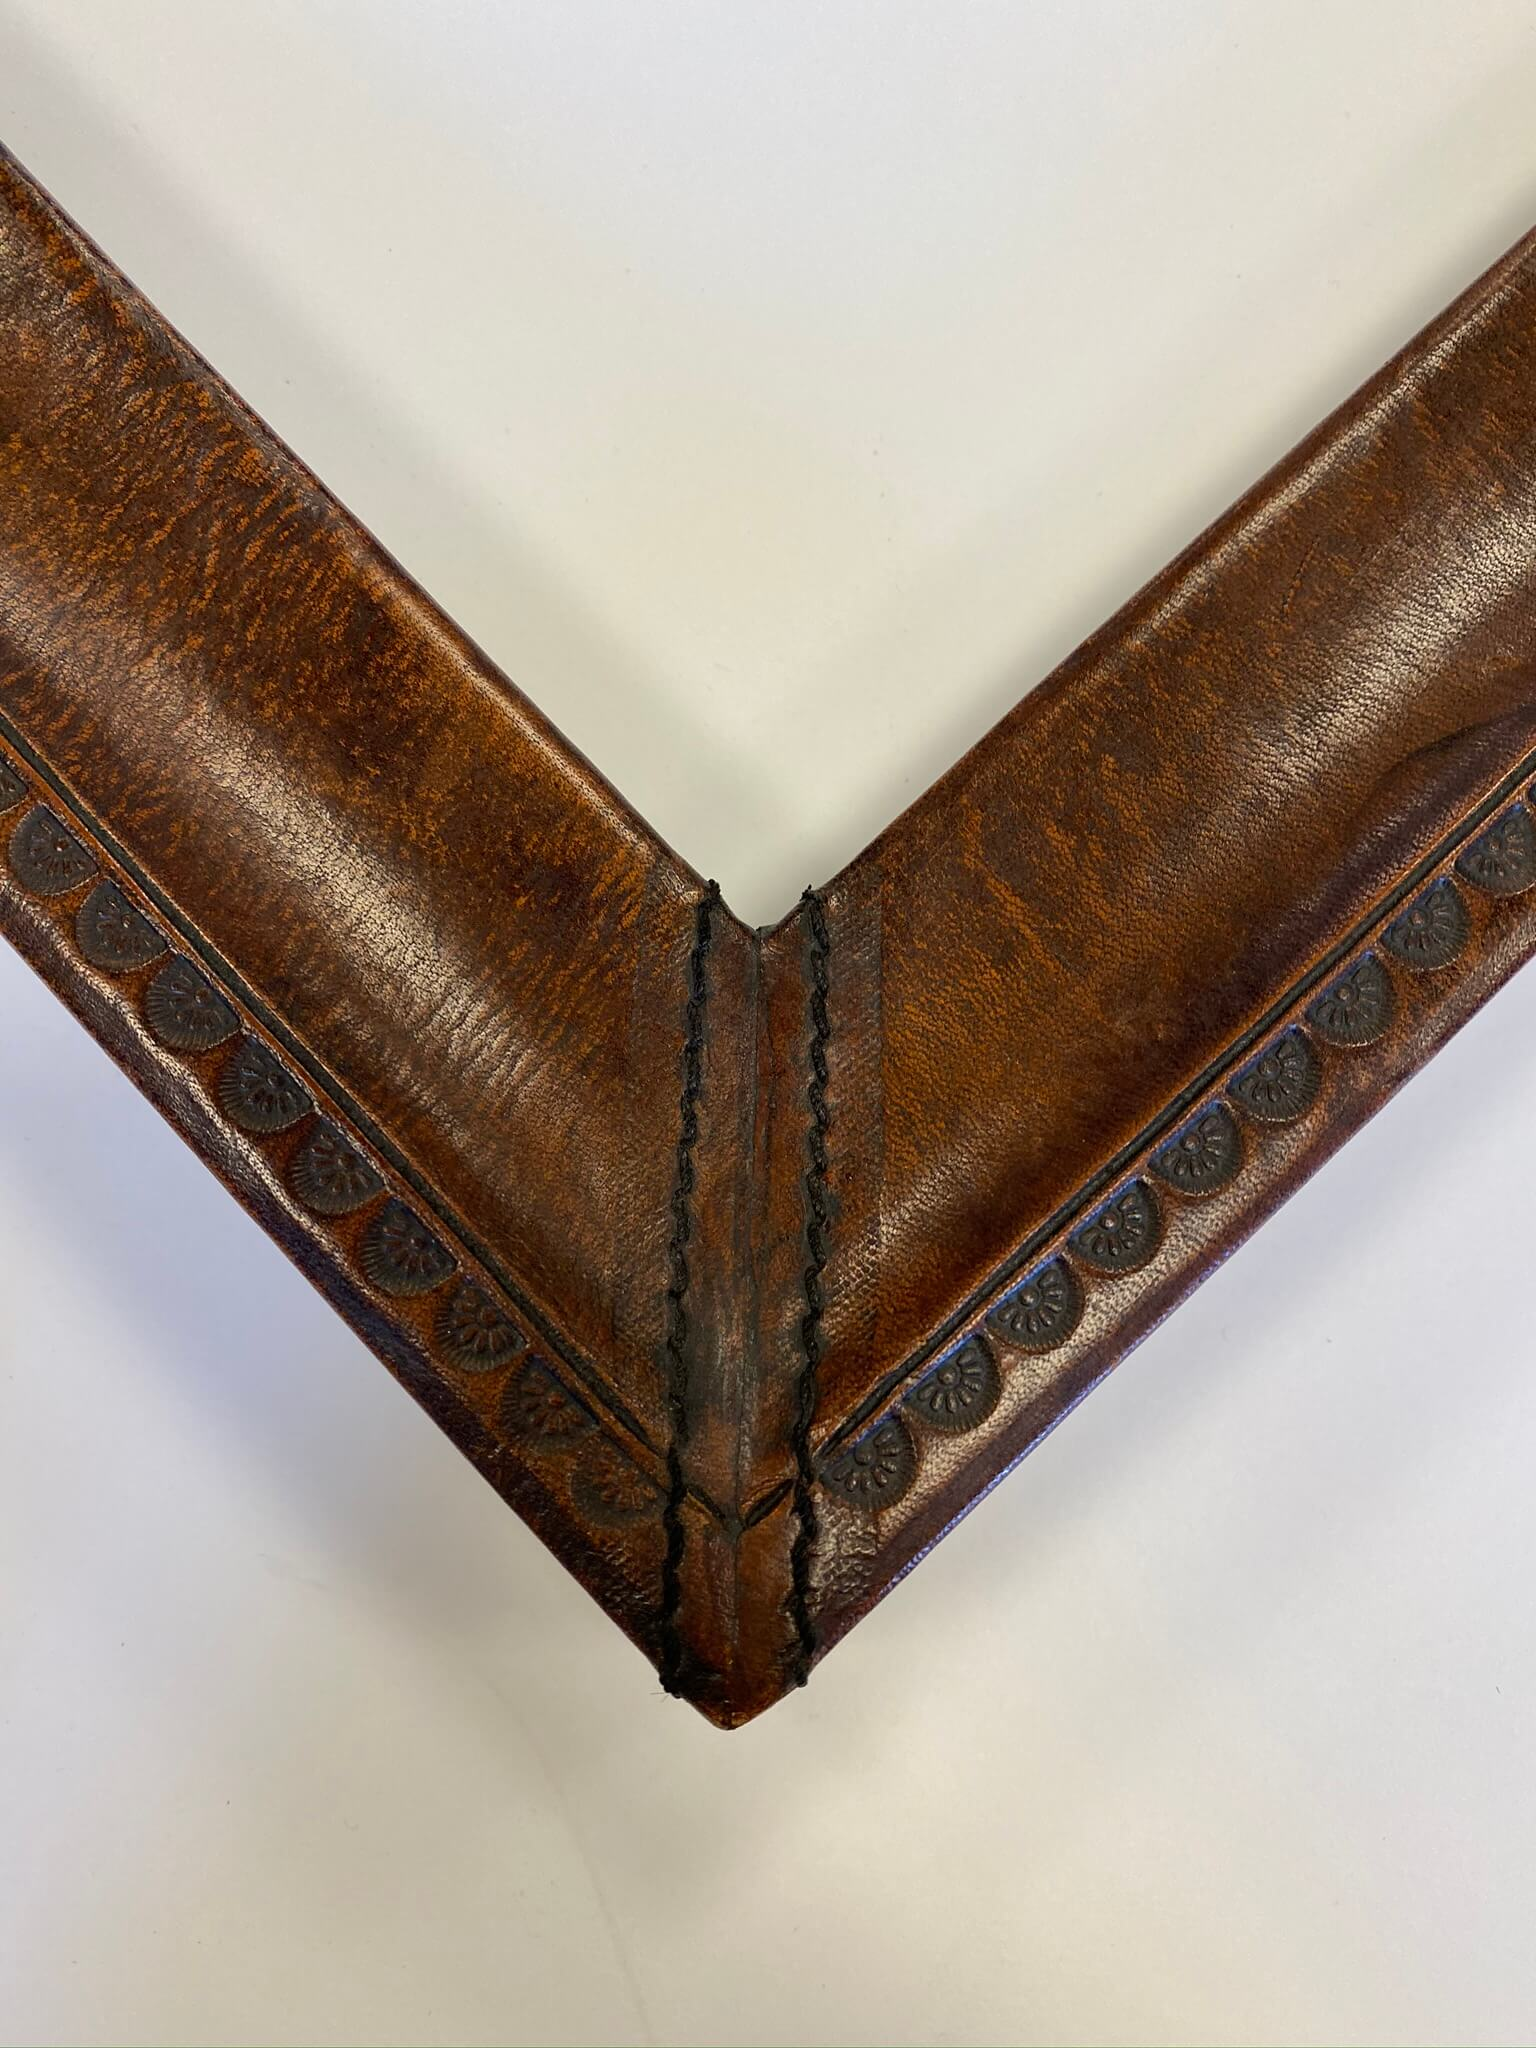 Custom brown leather frame, tooled design, April Hann Lanford, custom frames chicago, nashville custom framing